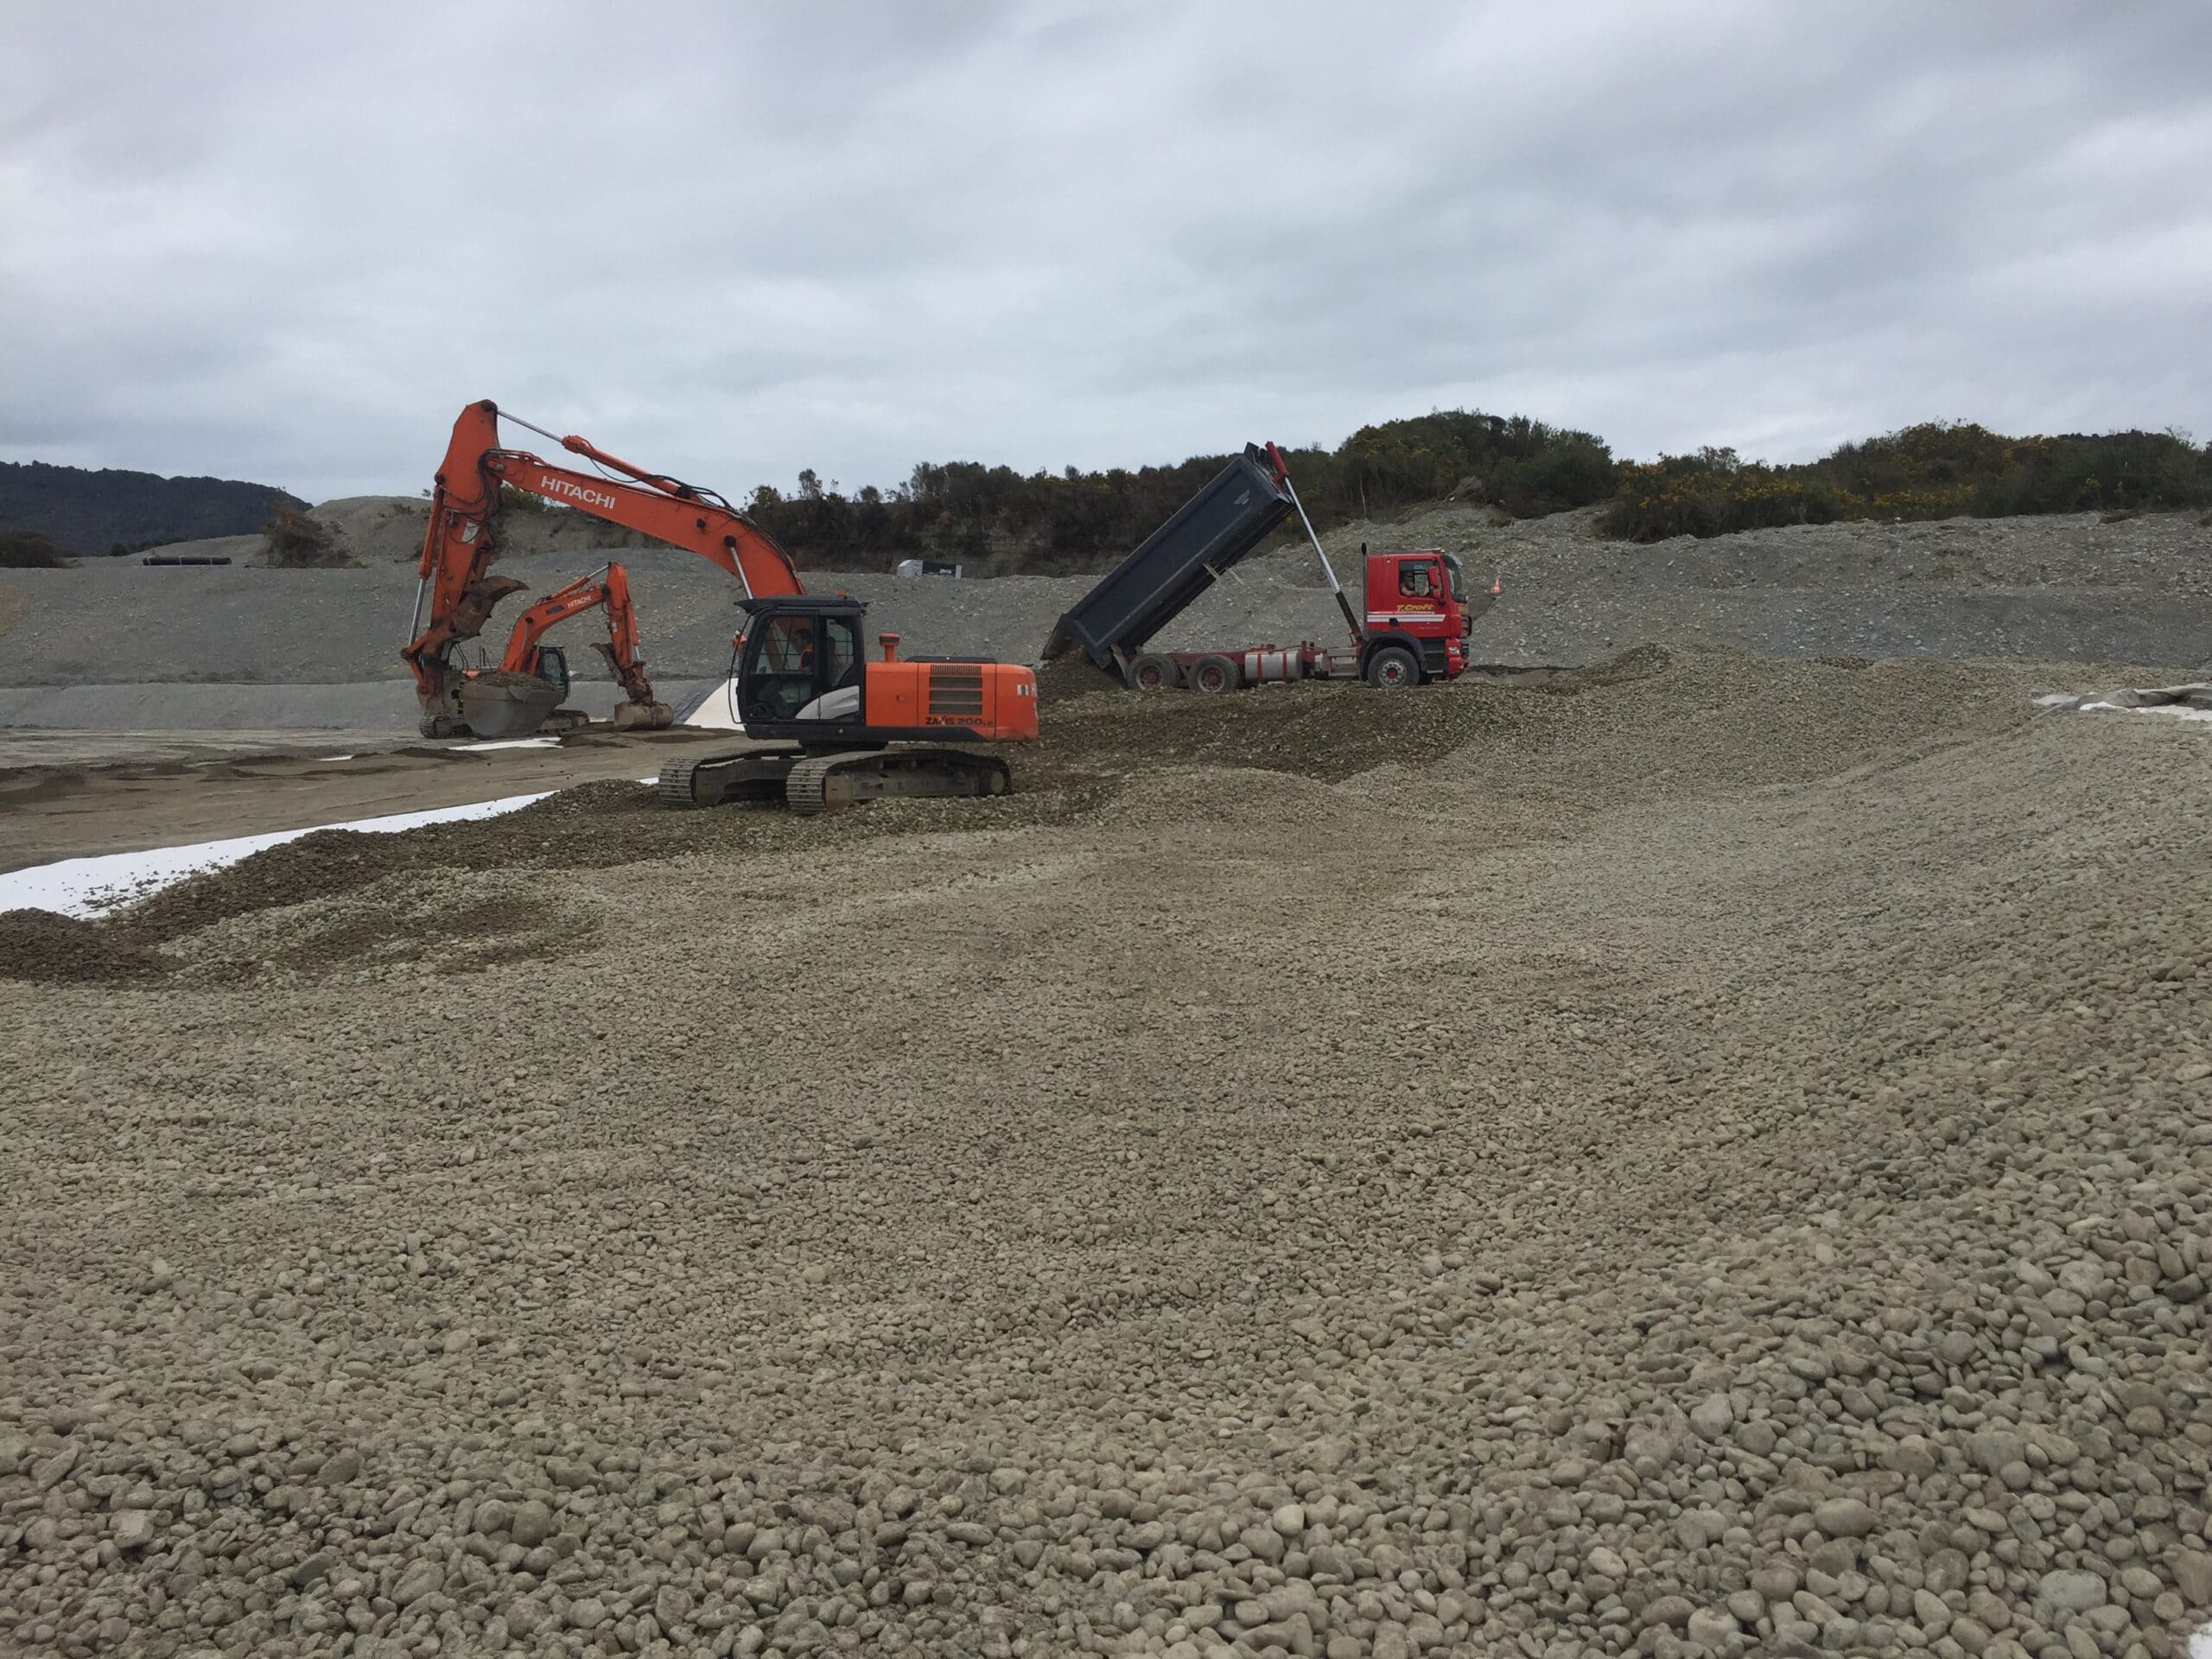 GrantHood_McLeans-Pit-Landfill-3a-9